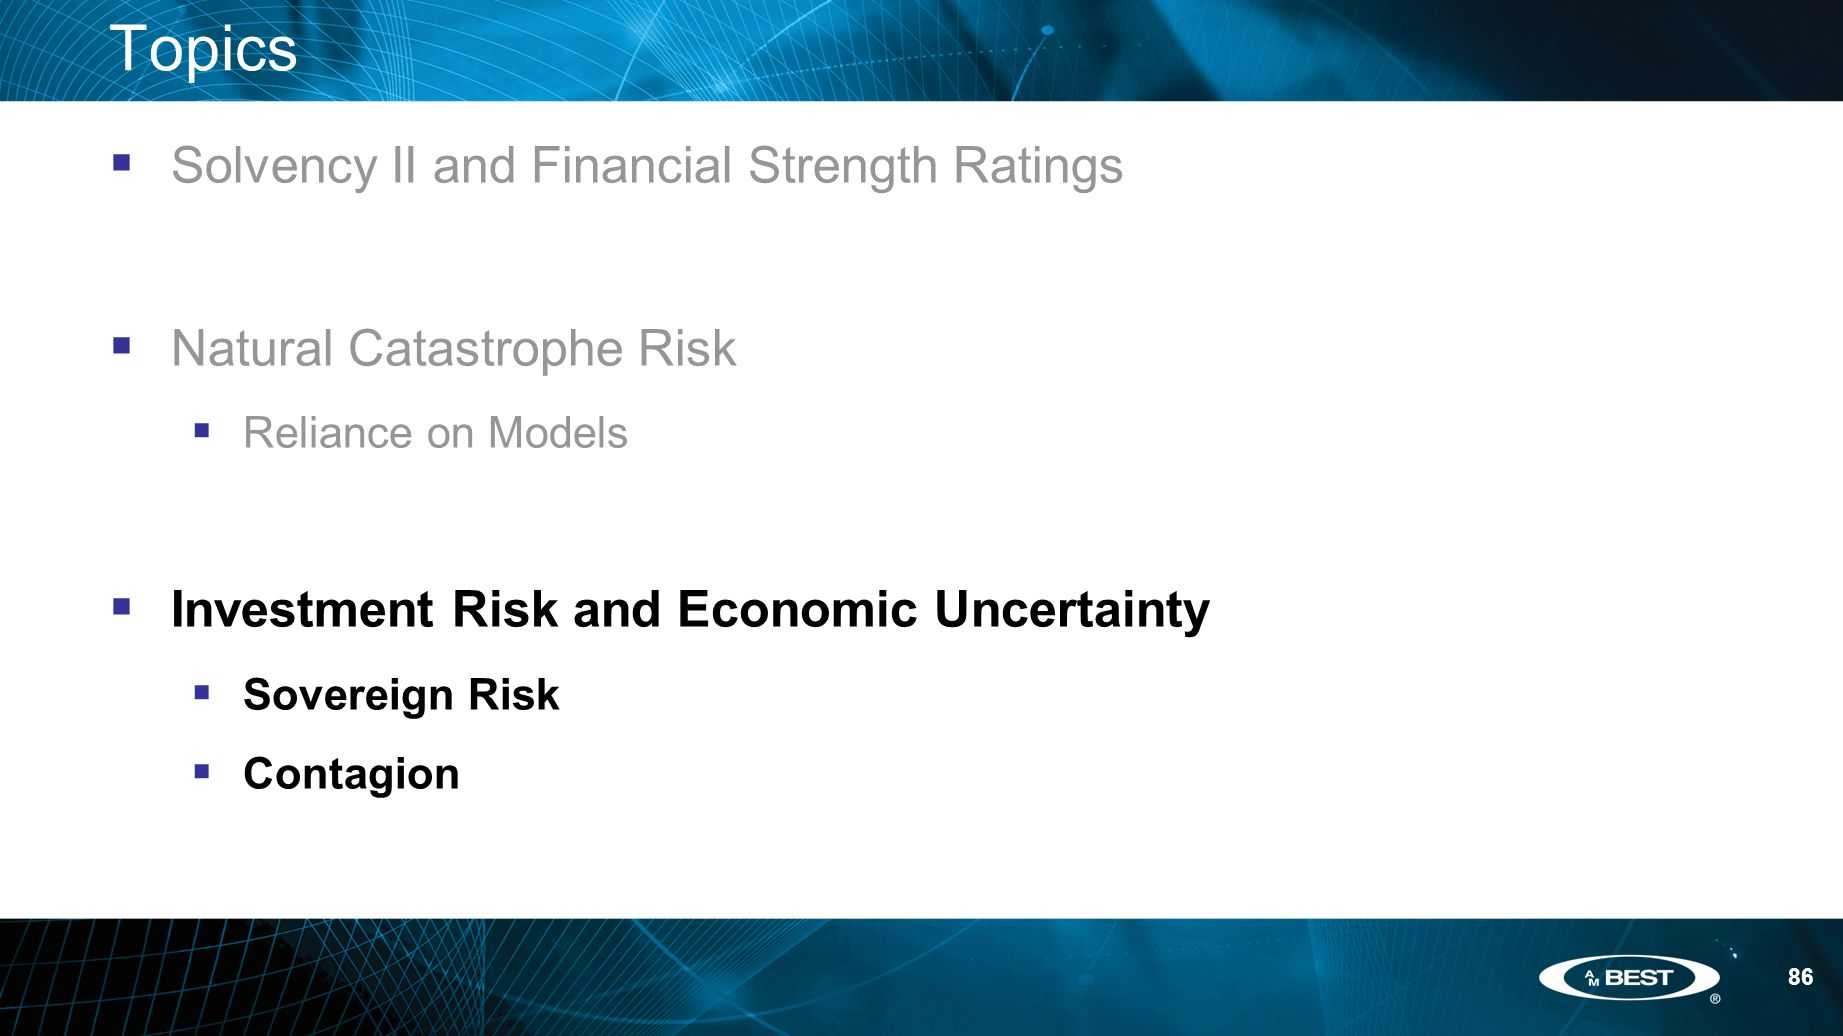 86 Topics  Solvency II and Financial Strength Ratings  Natural Catastrophe Risk  Reliance on Models  Investment Risk and Economic Uncertainty  Sovereign Risk  Contagion